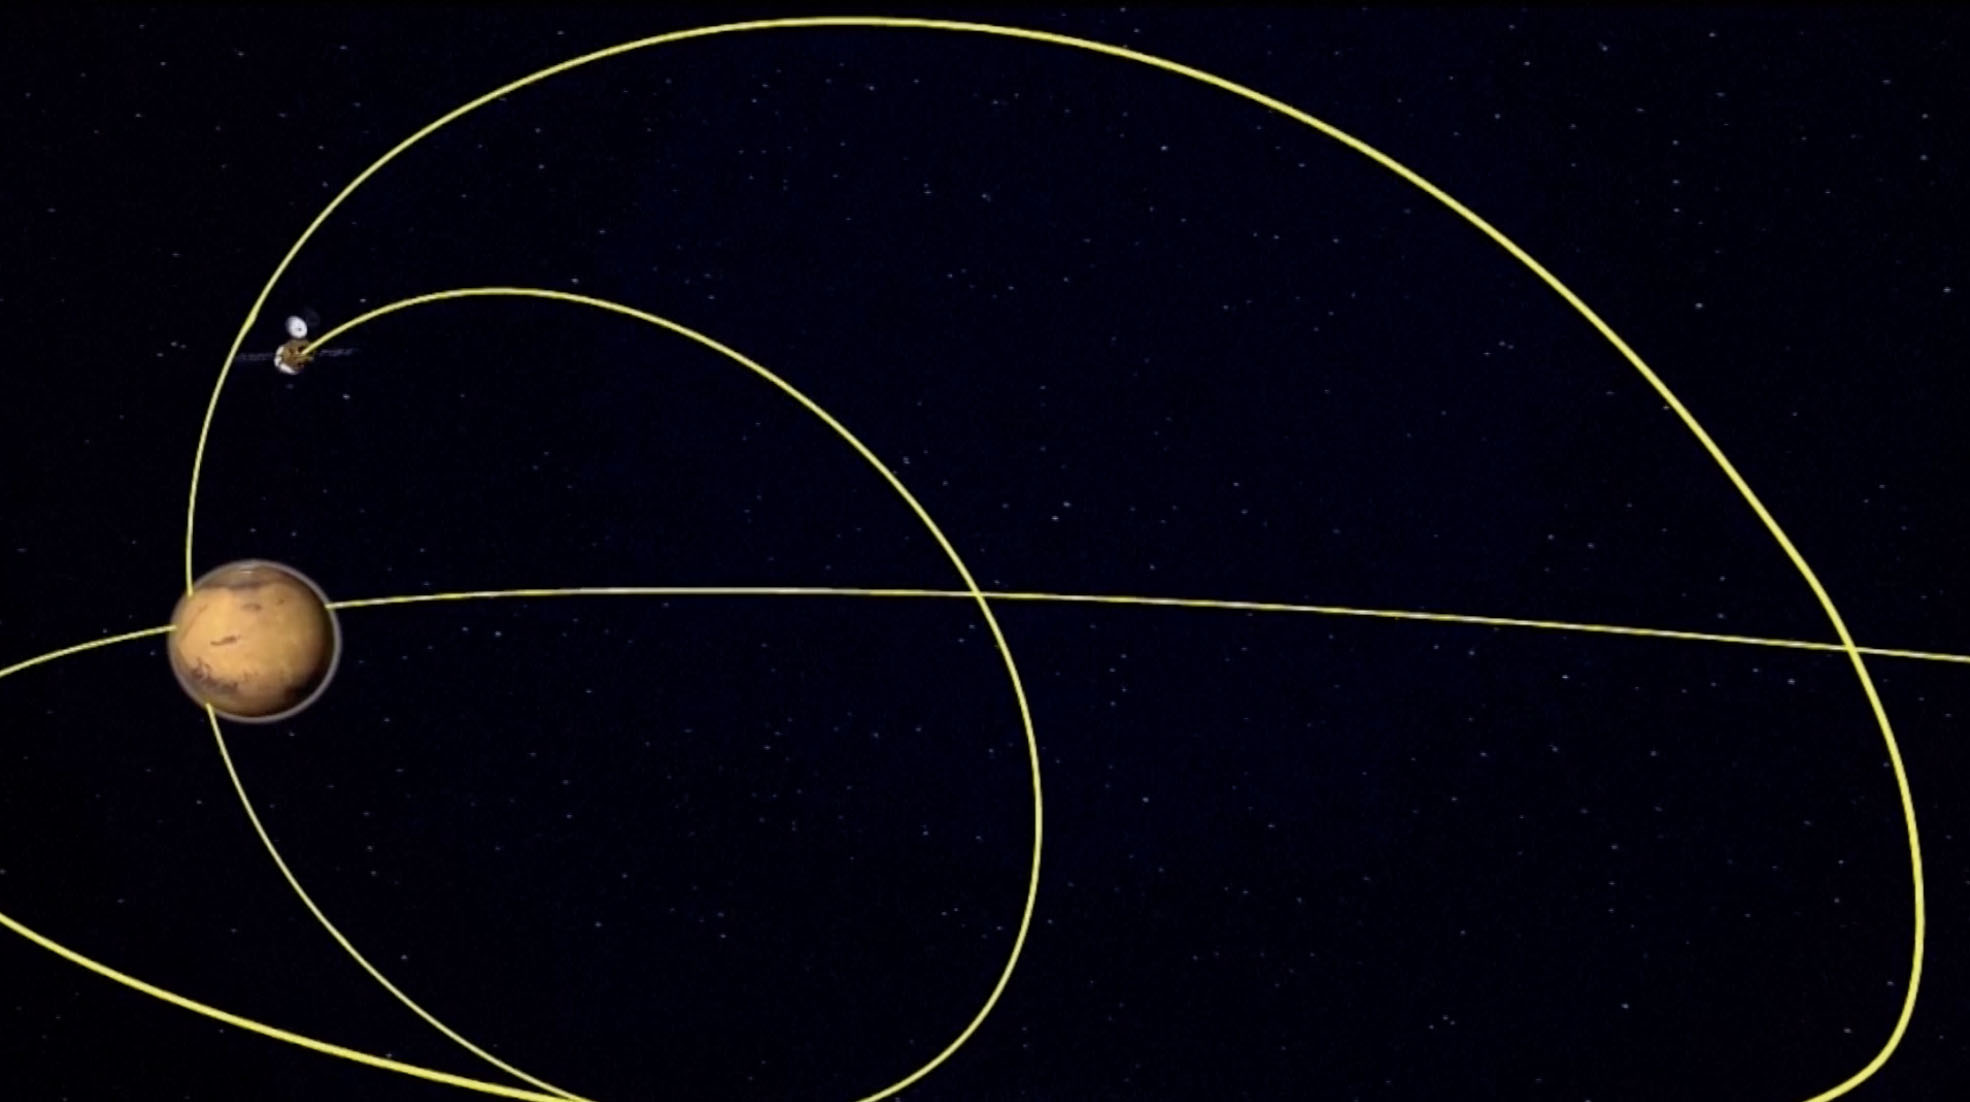 China's Tianwen-1 Mars mission enters orbit around the Red Planet in this still from a video animation. Tianwen-1, China's first Mars mission, arrived at Mars on Feb. 10, 2021.